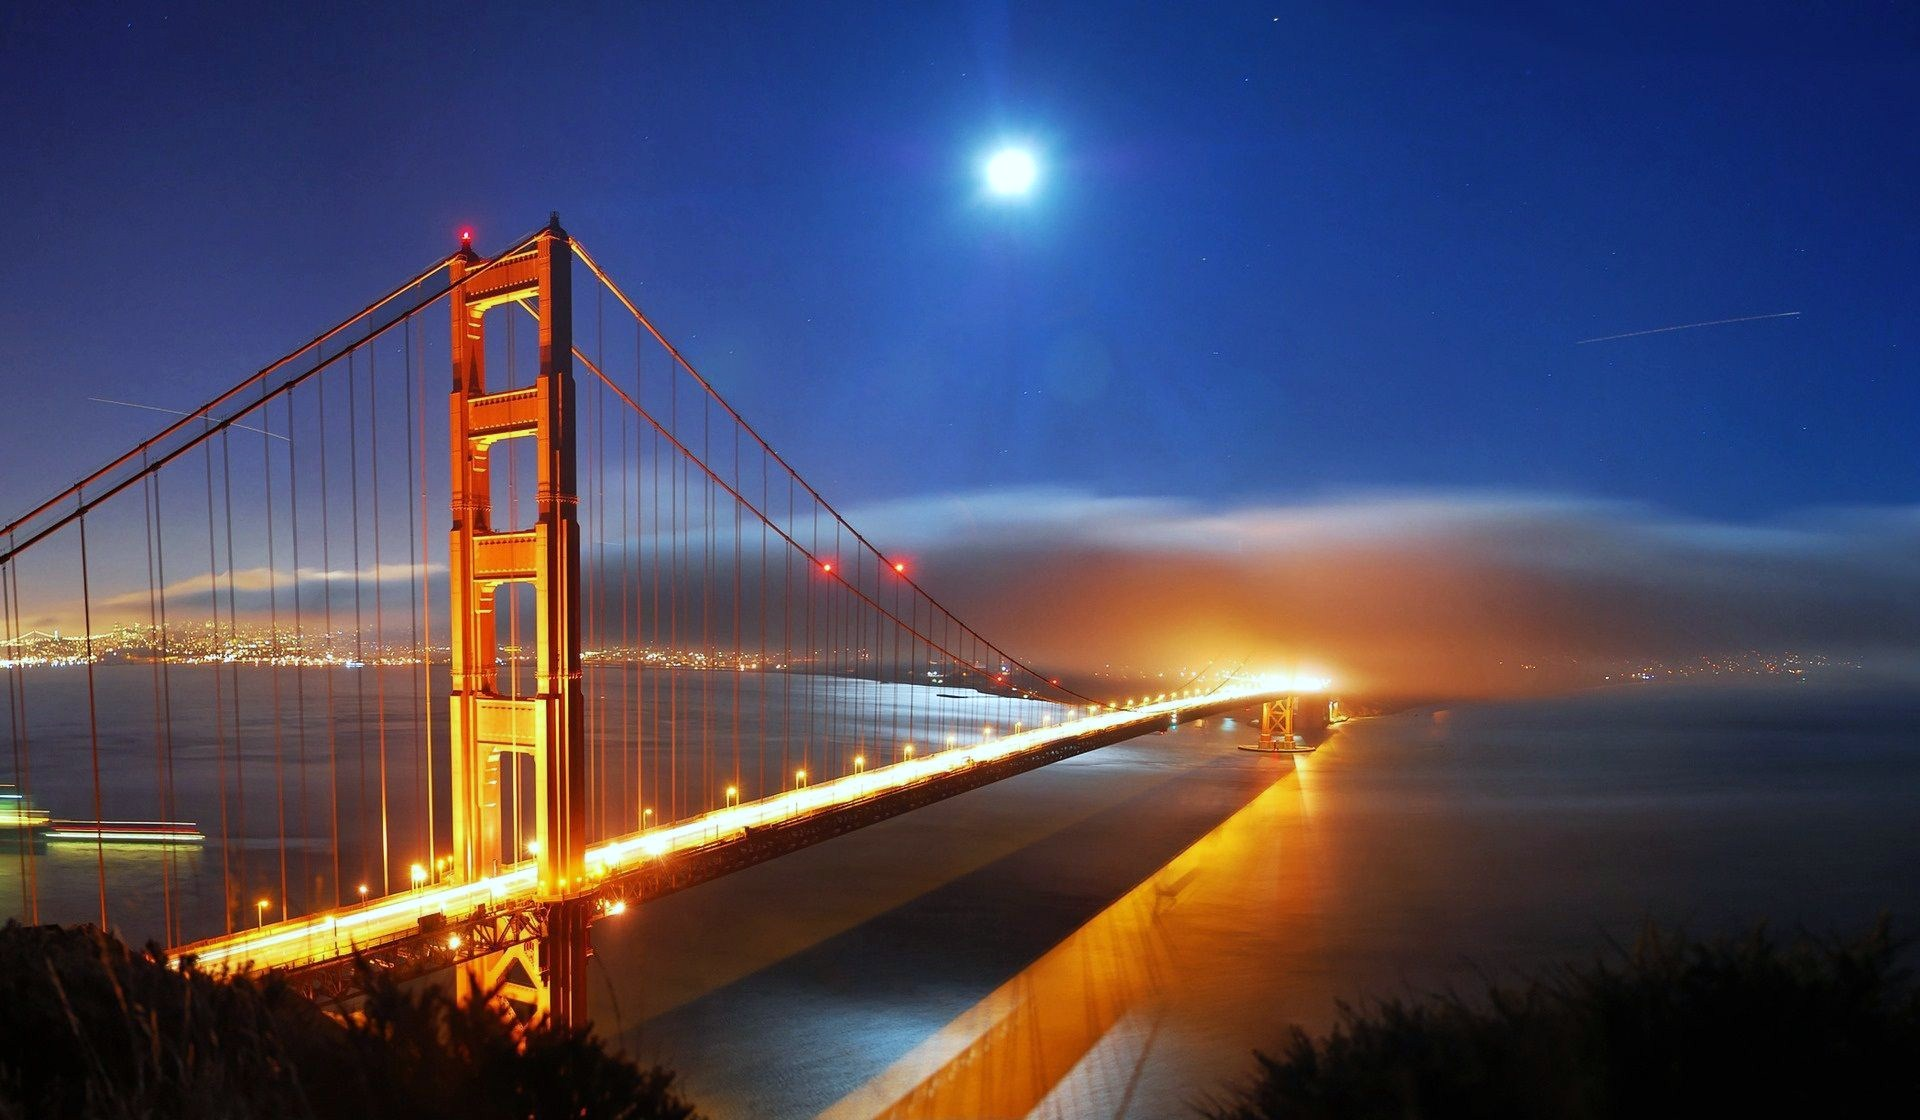 san-francisco-4k-hd-wallpapers-unabuenaidea.es (23)